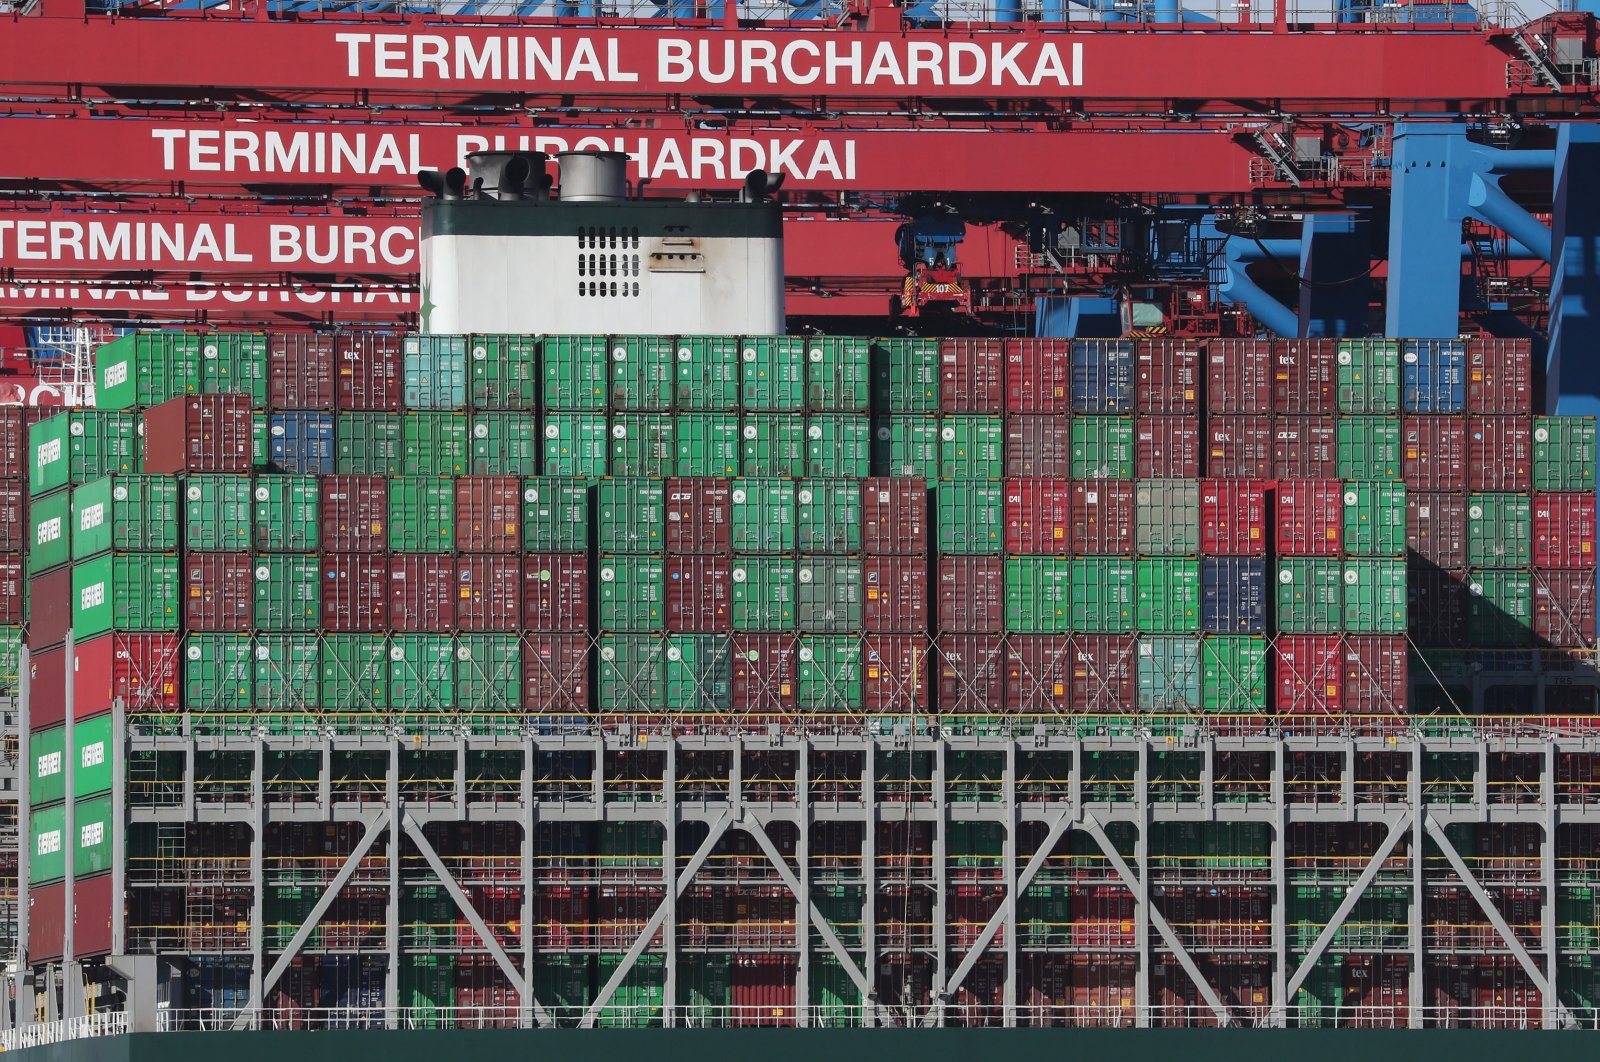 Containers are stacked on a ship at the Burchardkai container terminal of port operator HHLA in Hamburg, northern Germany, Feb. 24, 2021. (EPA Photo)